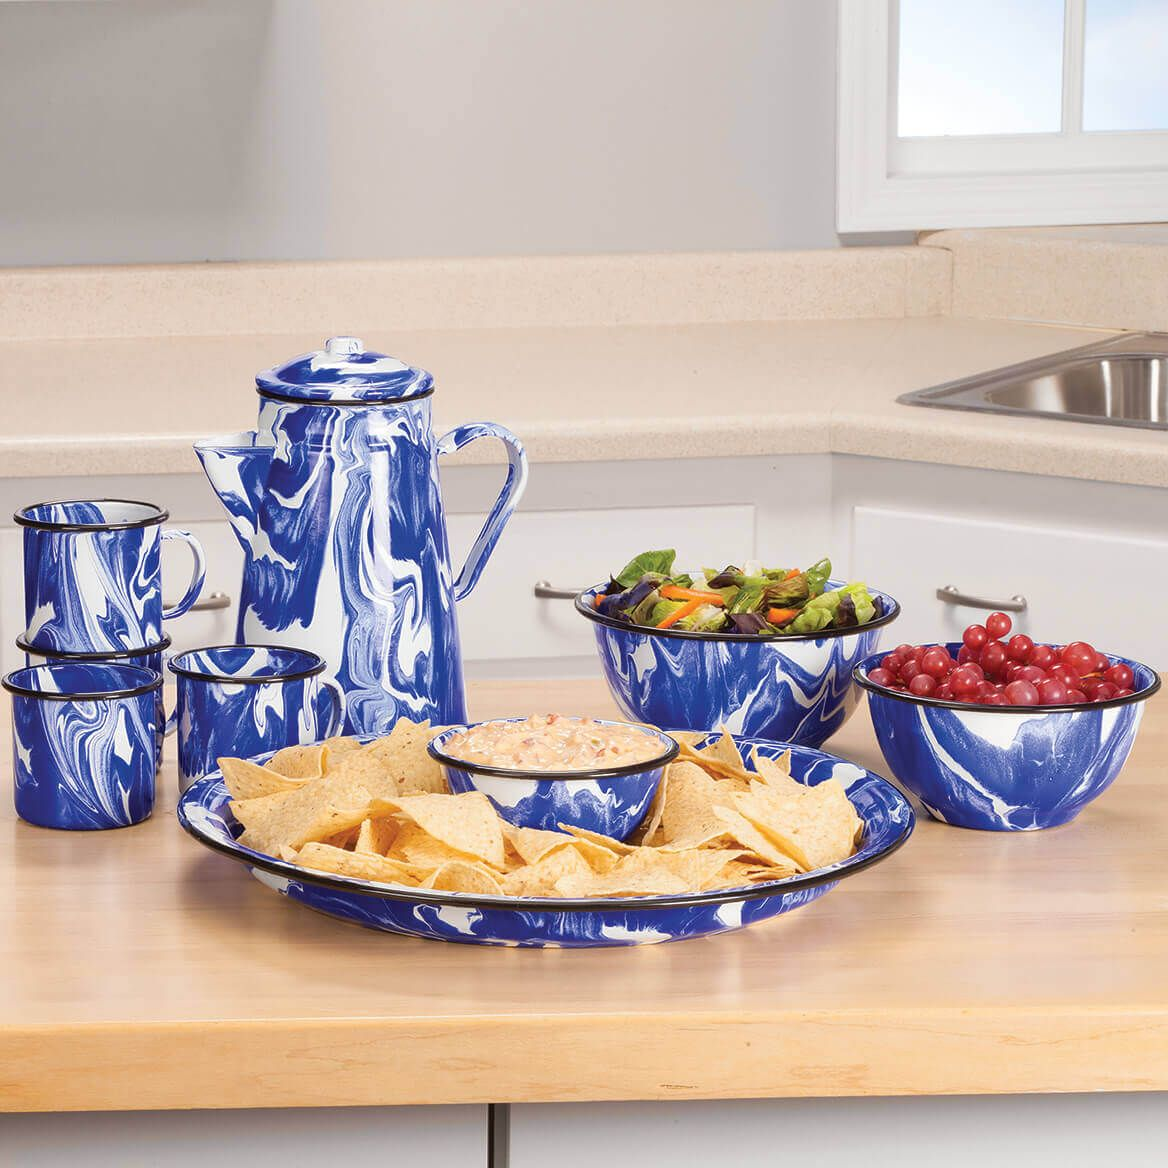 Blue Marble Enamelware Set of 3 Bowls by Home Marketplace-368312